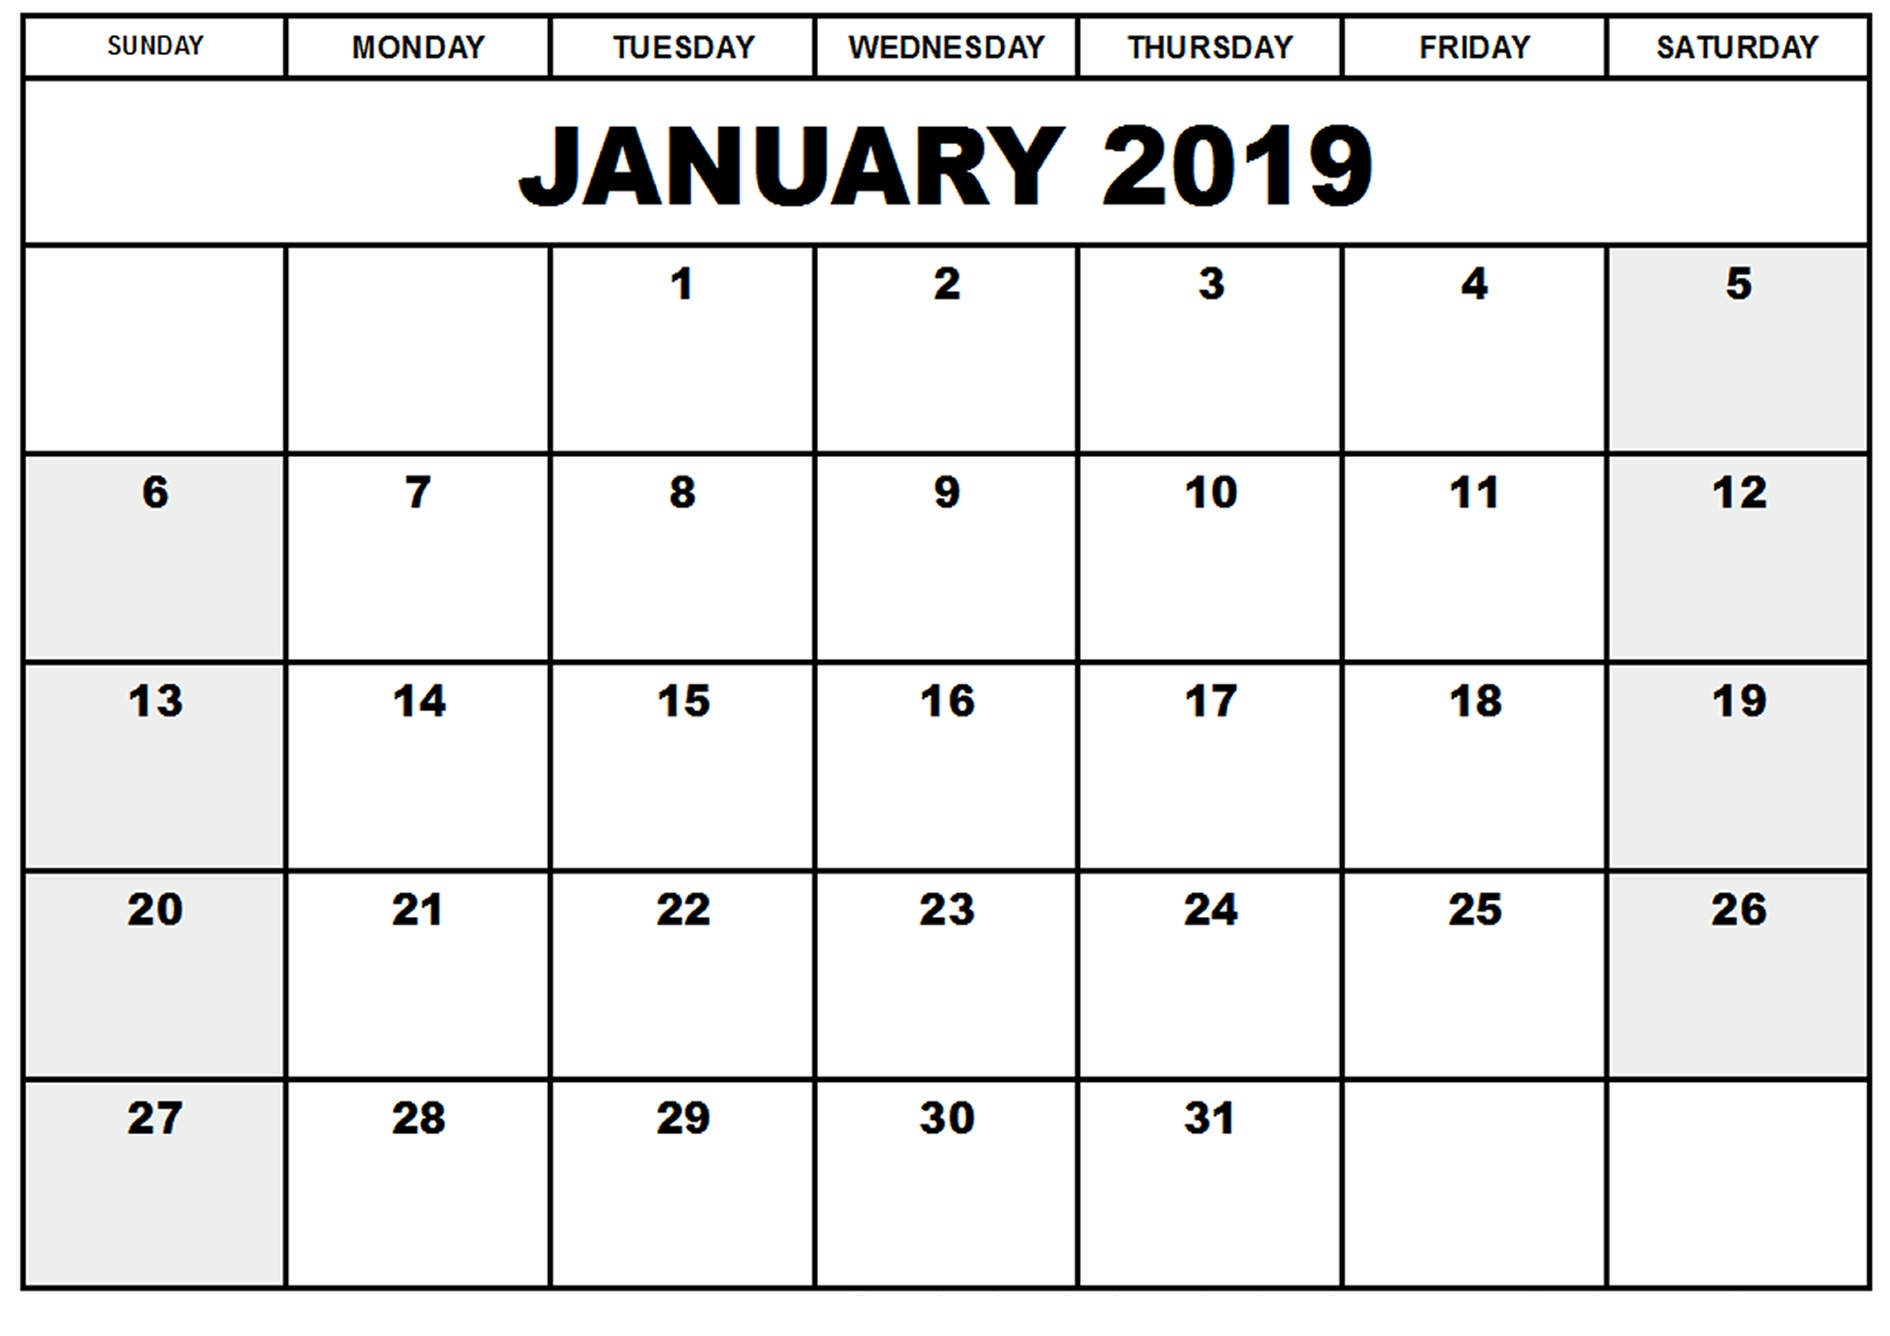 photograph about Printable November Calendar Pdf called January 2019 Calendar Printable - Totally free Templates - Printable